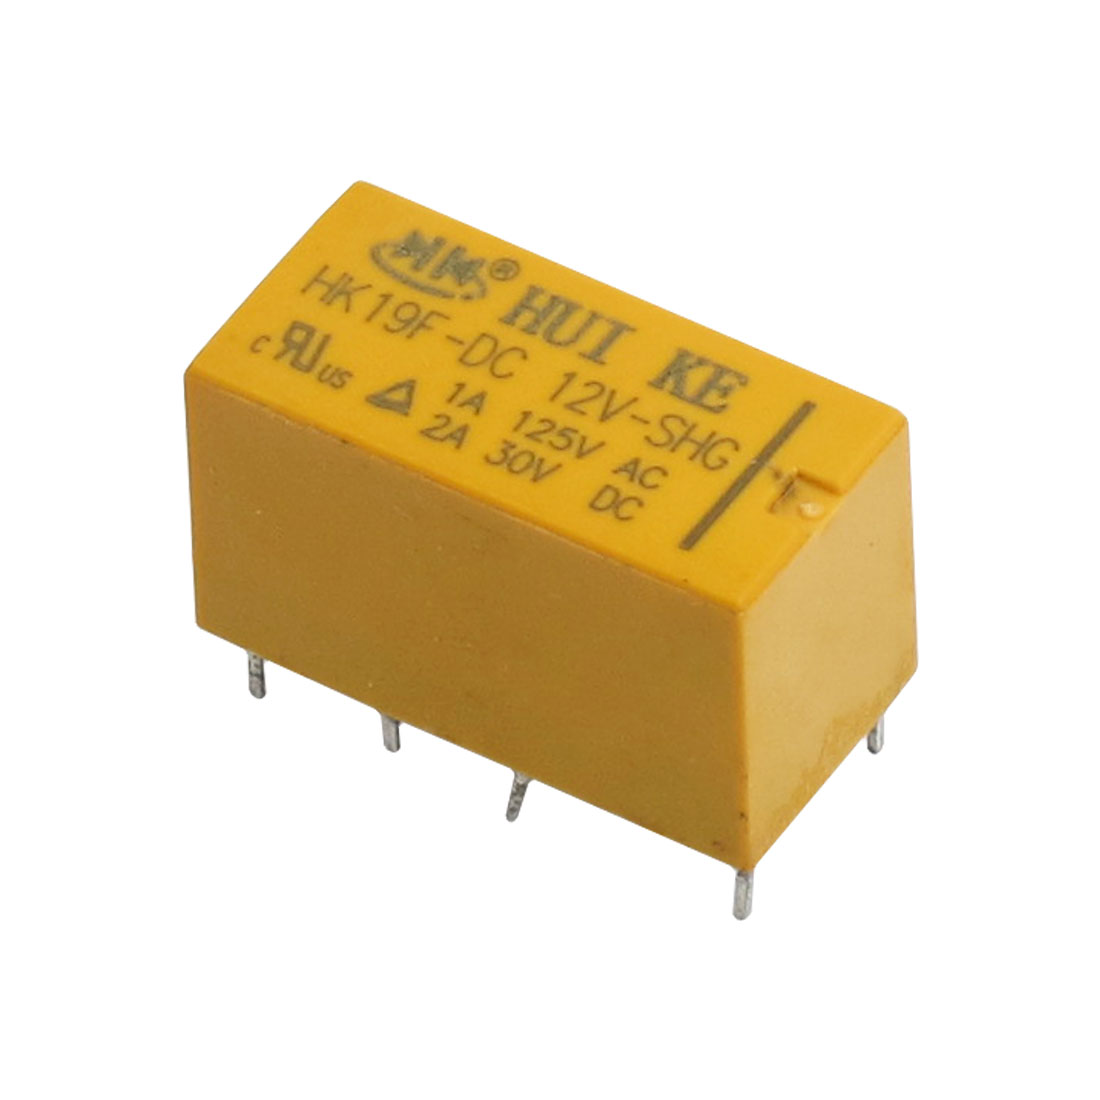 DC 12V Coil 8 Pins 2NO 2NC DPDT Yellow Shell PCB Type Power Relay HK19F